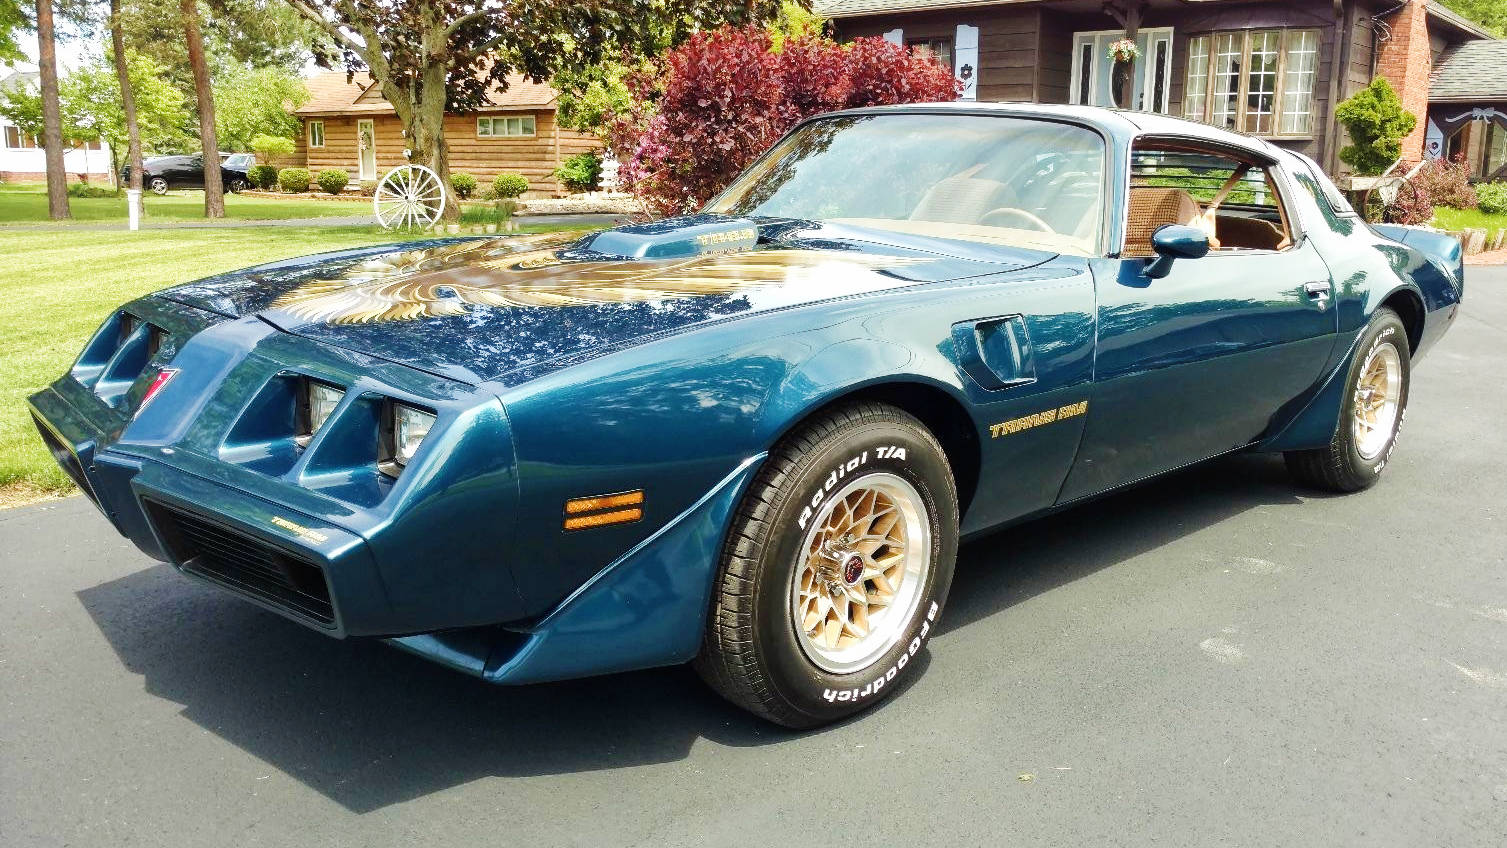 1979 Trans Am Picture Nocturne Blue Beauty 1979 Pontiac Trans Am